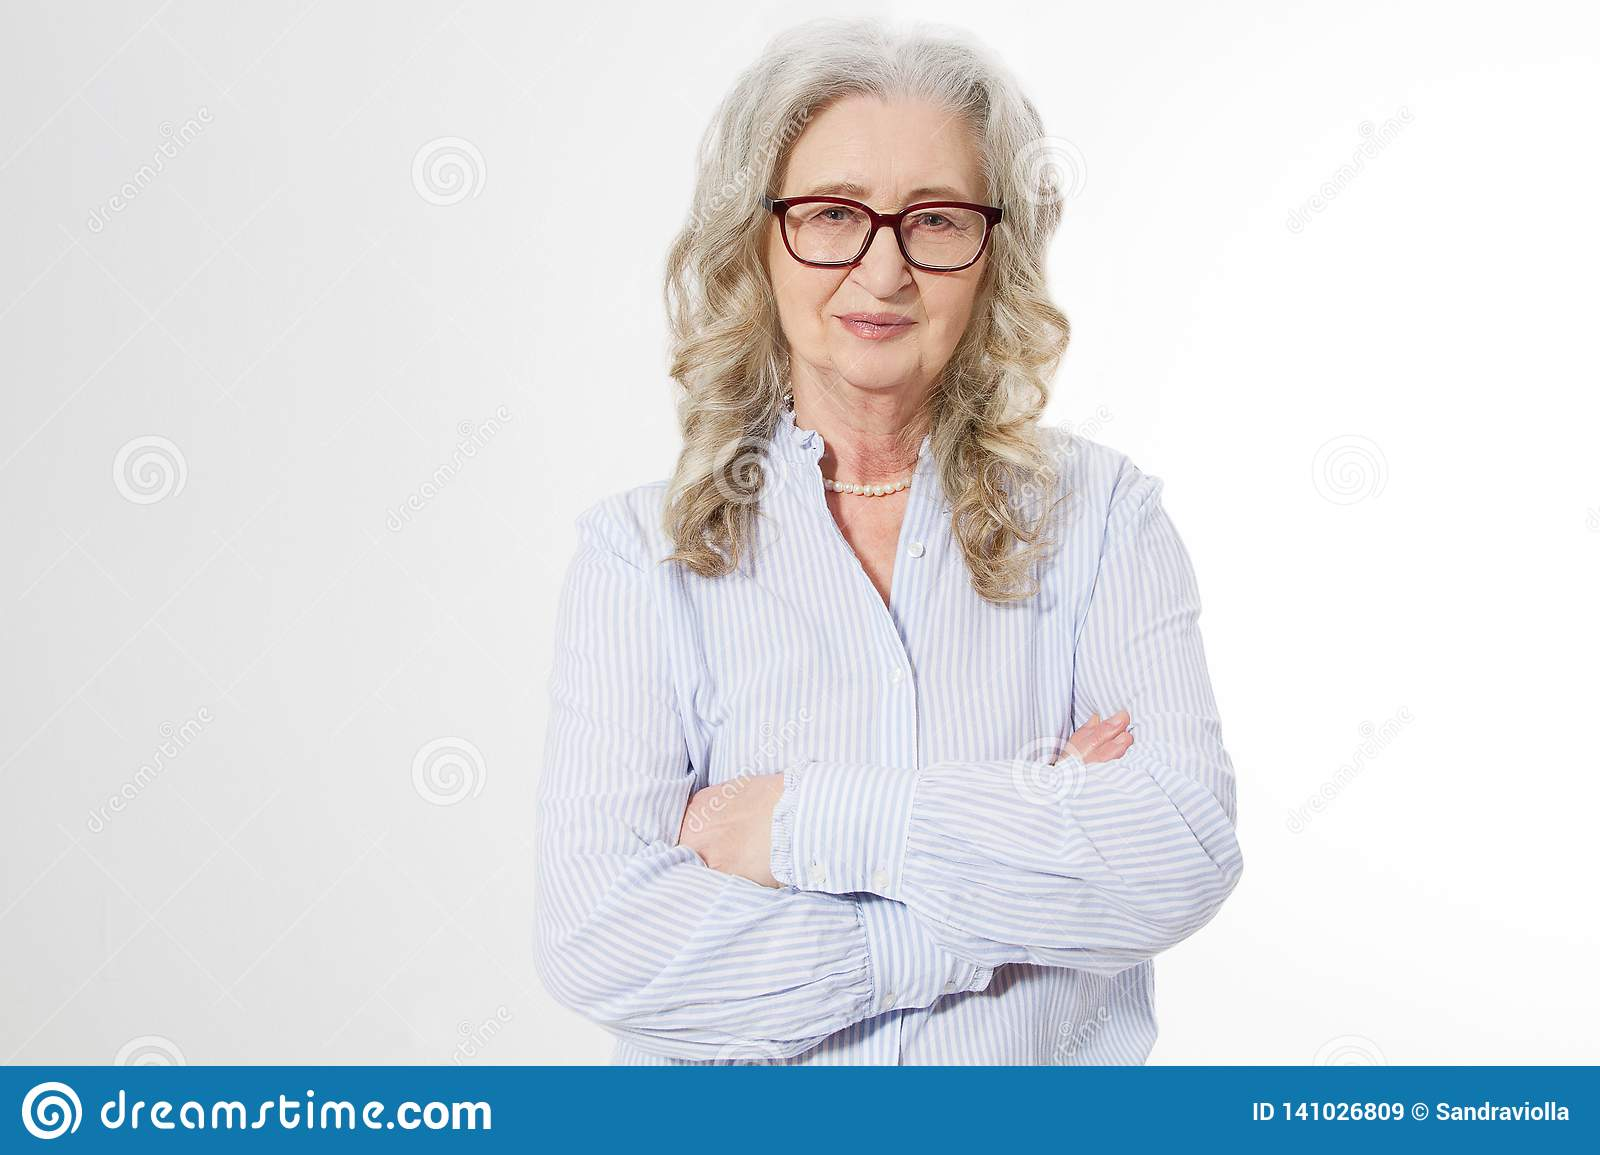 Senior business woman with stylish glasses and wrinkle face isolated on white background. Mature healthy lady. Copy space. Seniors